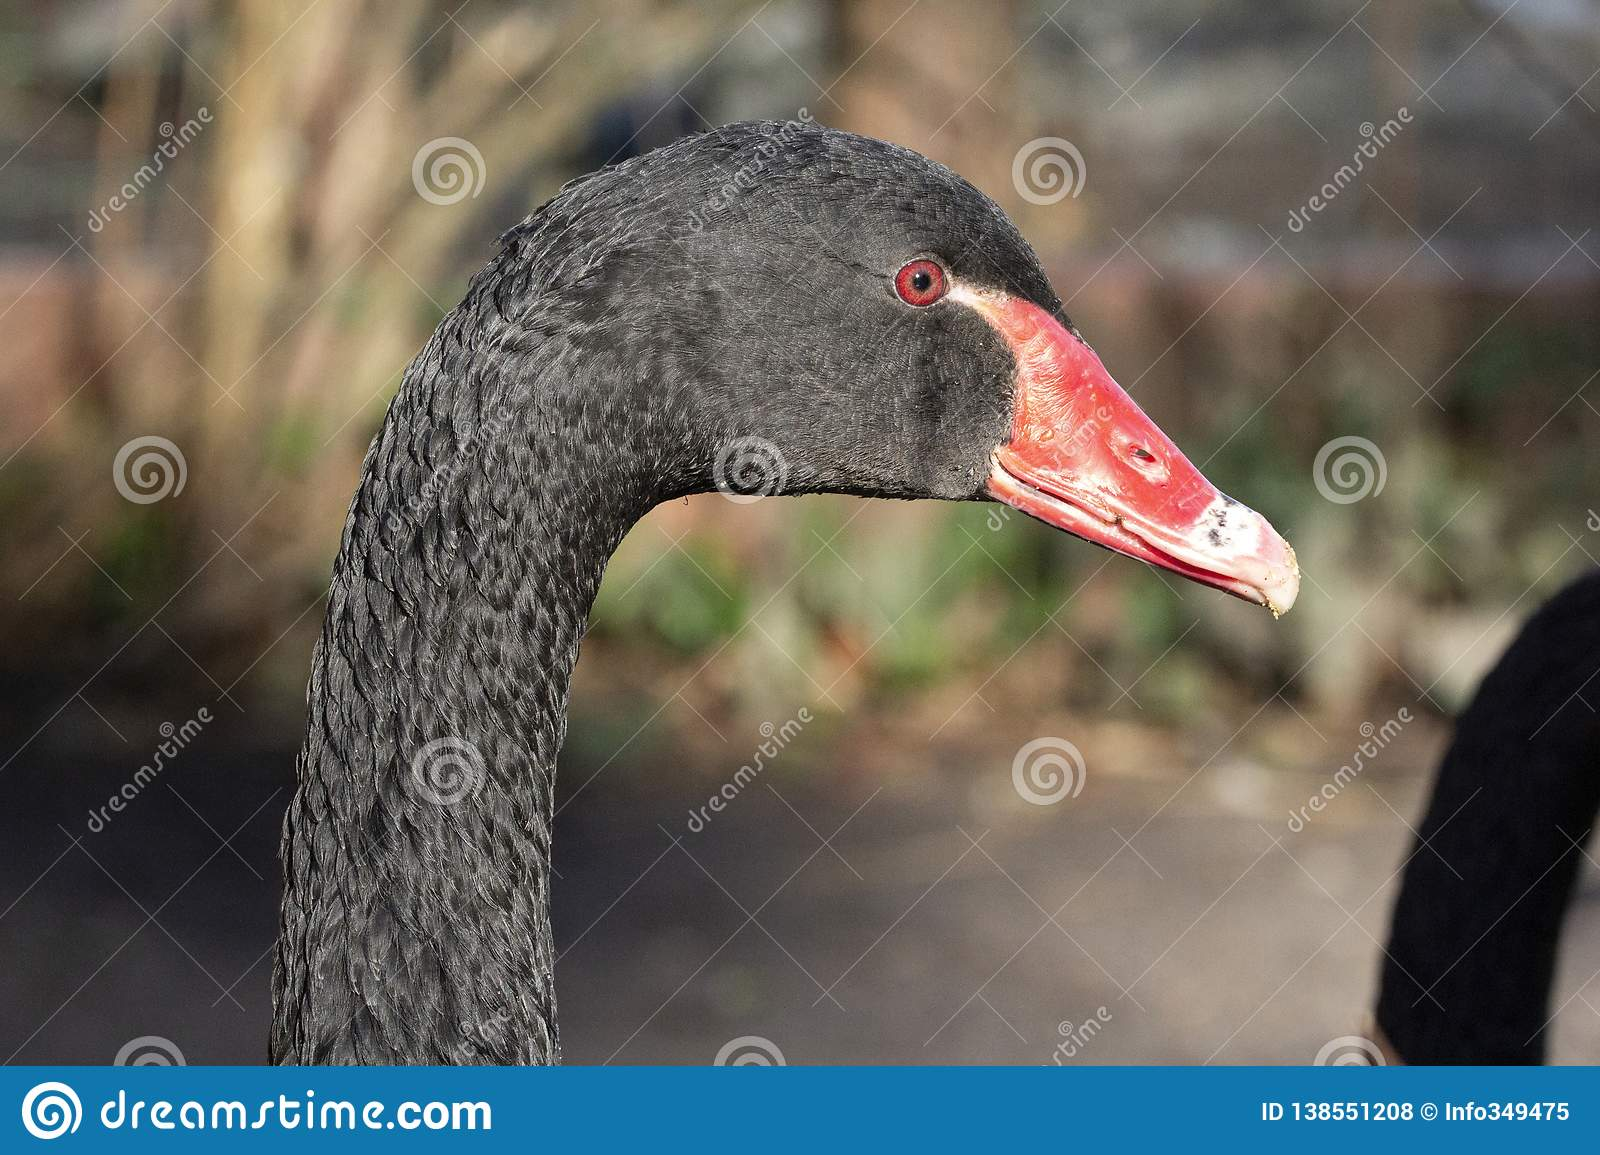 Close up portrait of a black swan with red beak and red eyes.